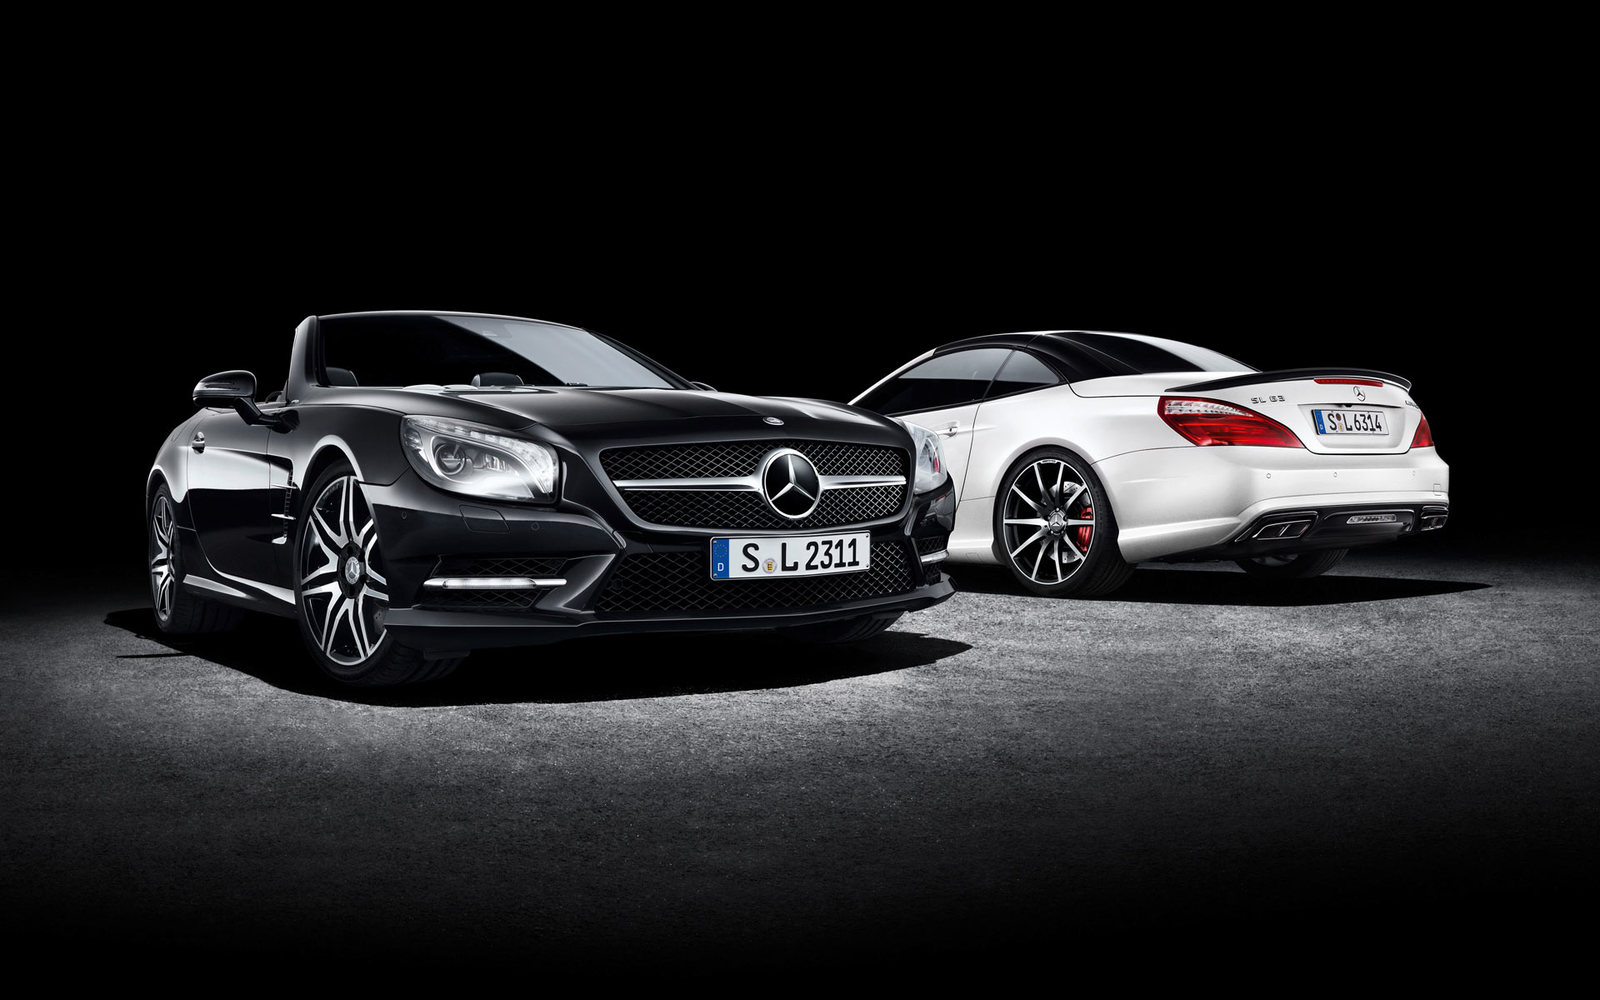 Mercedes SL 2Look Edition